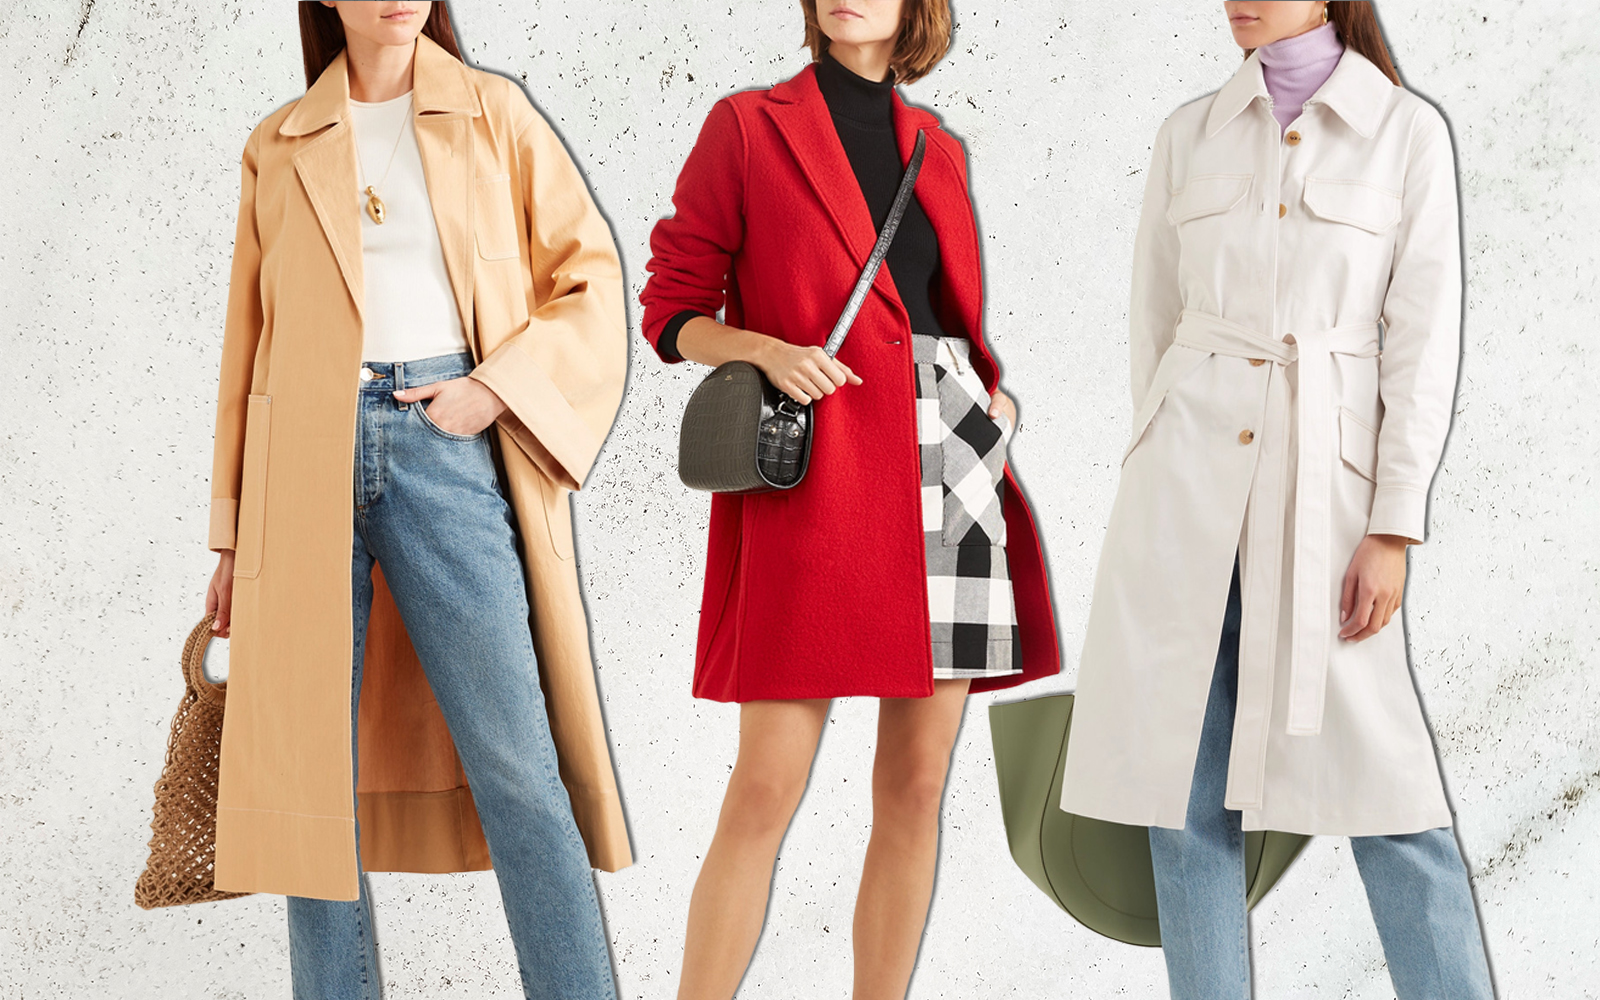 17 Stylish Winter Coats to Buy on Sale Right Now